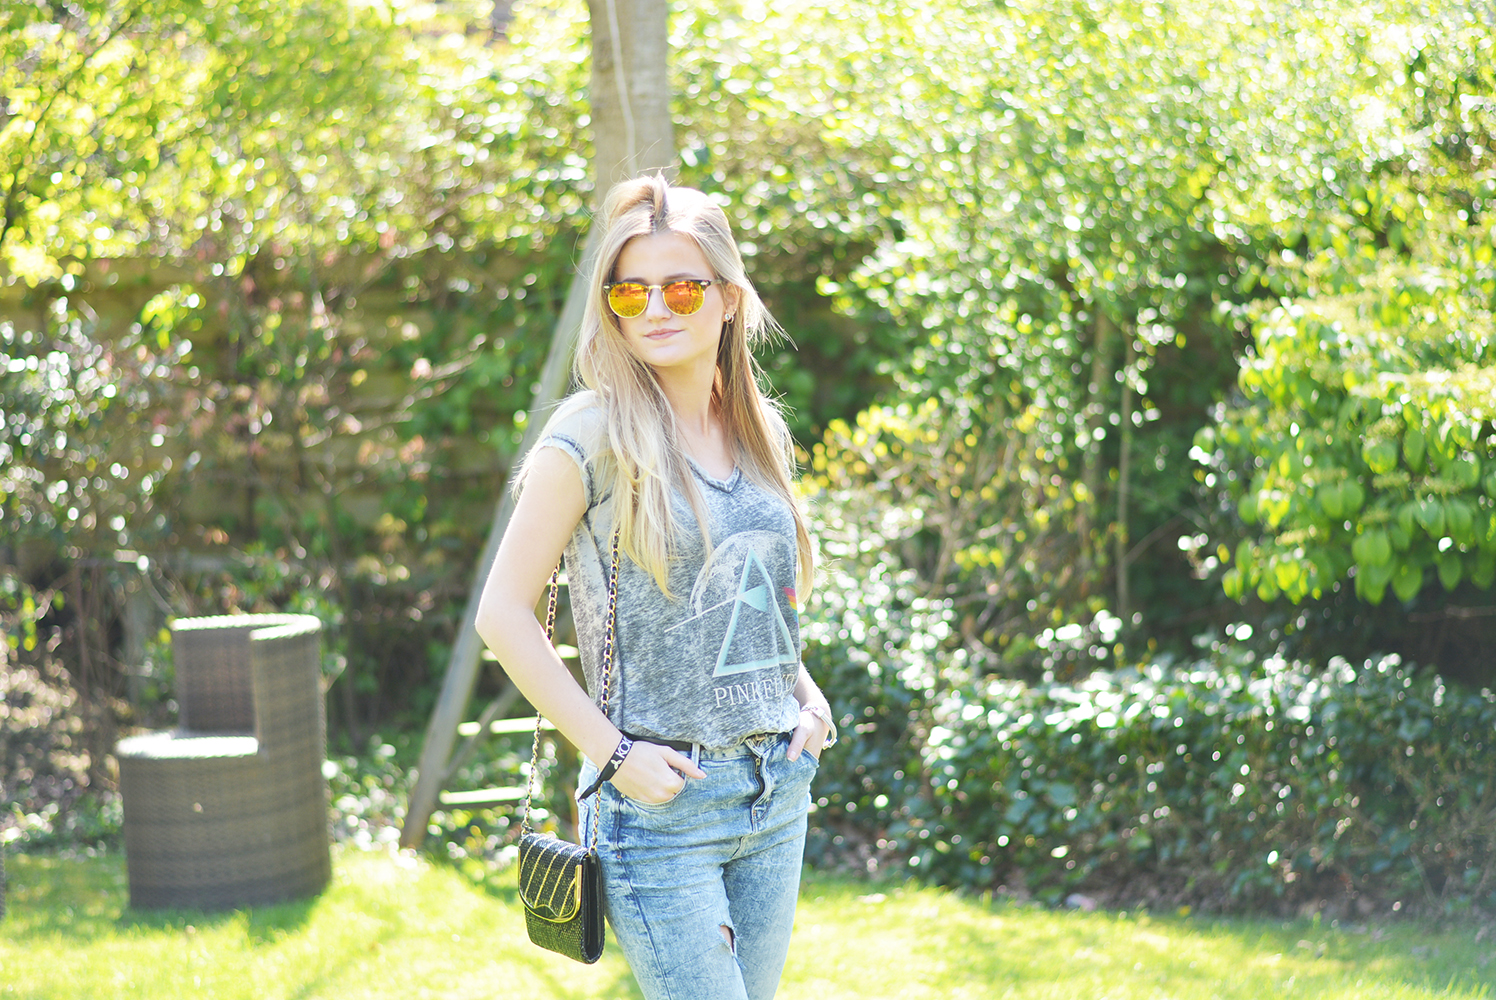 OOTD: Ripped Jeans